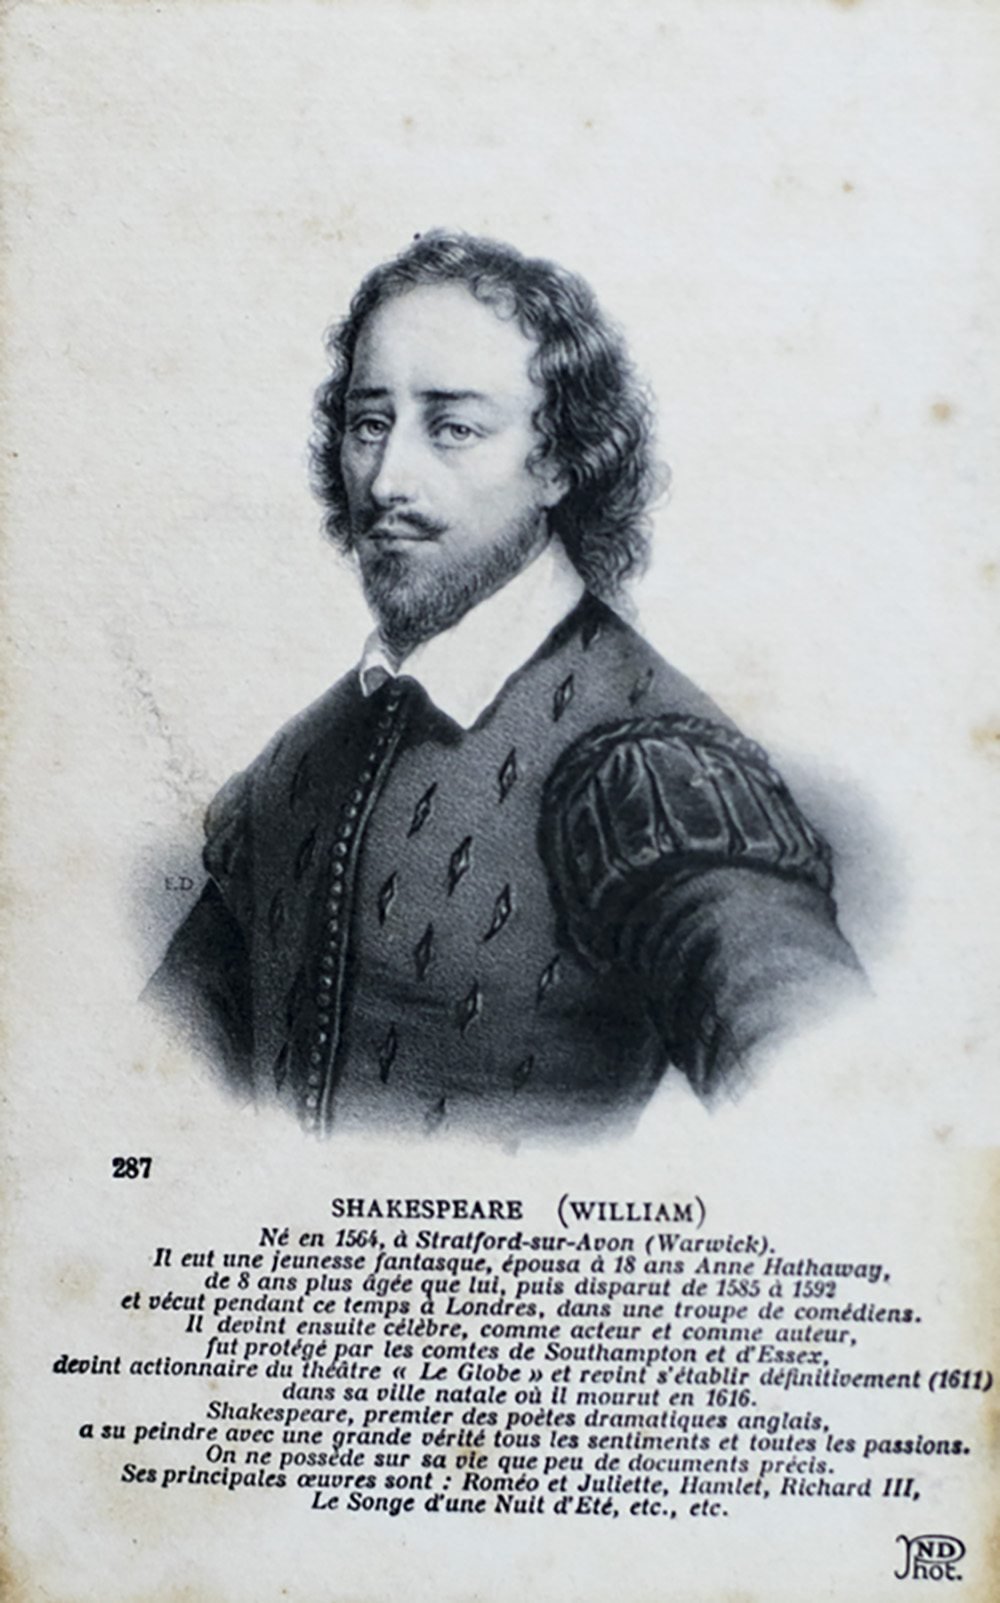 brief biography of william shakespeare According to tradition, the great english dramatist and poet william shakespeare is born in stratford-on-avon on april 23, 1564 it is impossible to be certain the exact day on which he was born.